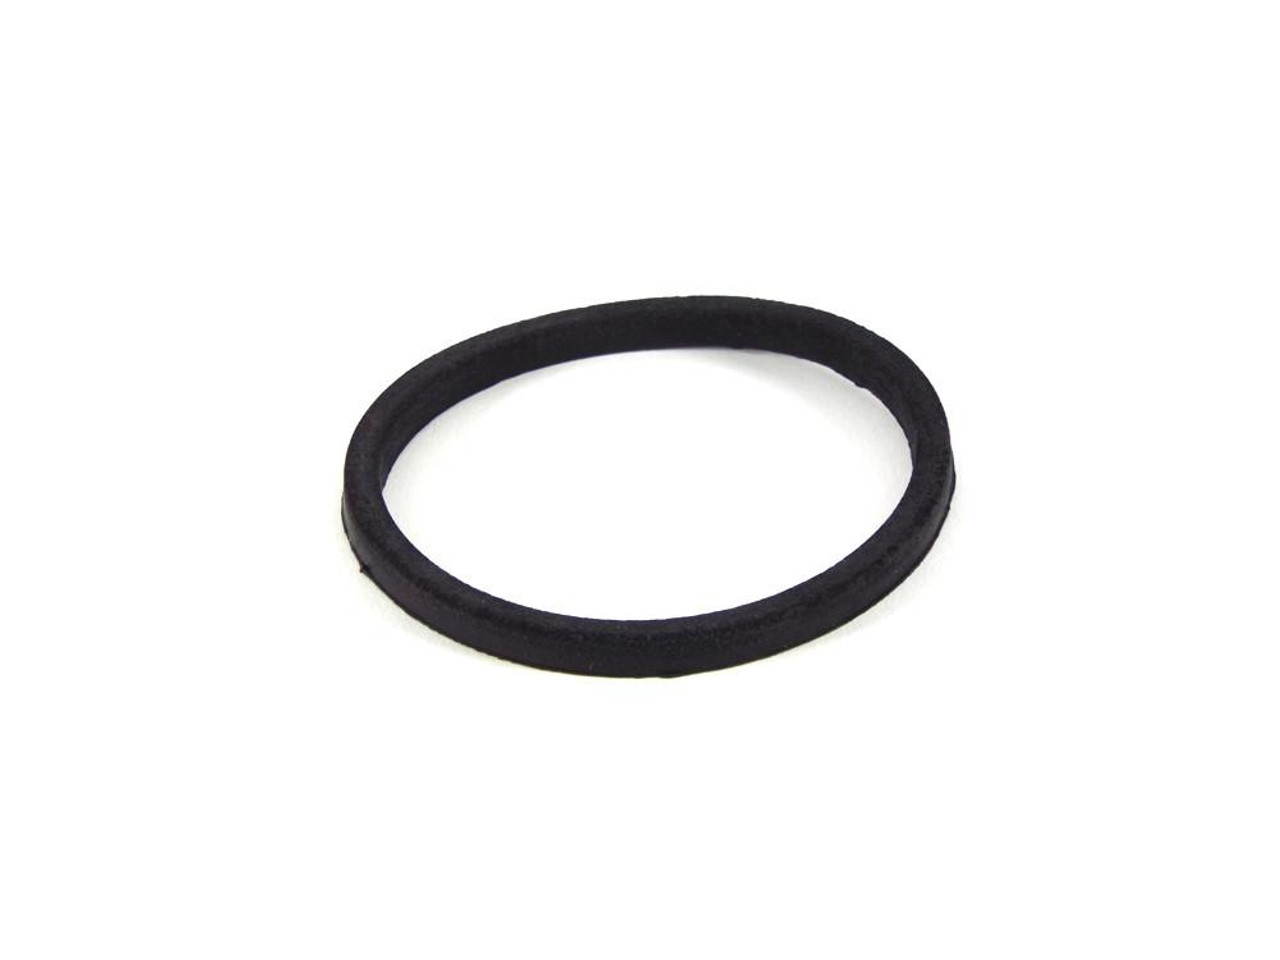 Gasket for 10oz Brush Washer